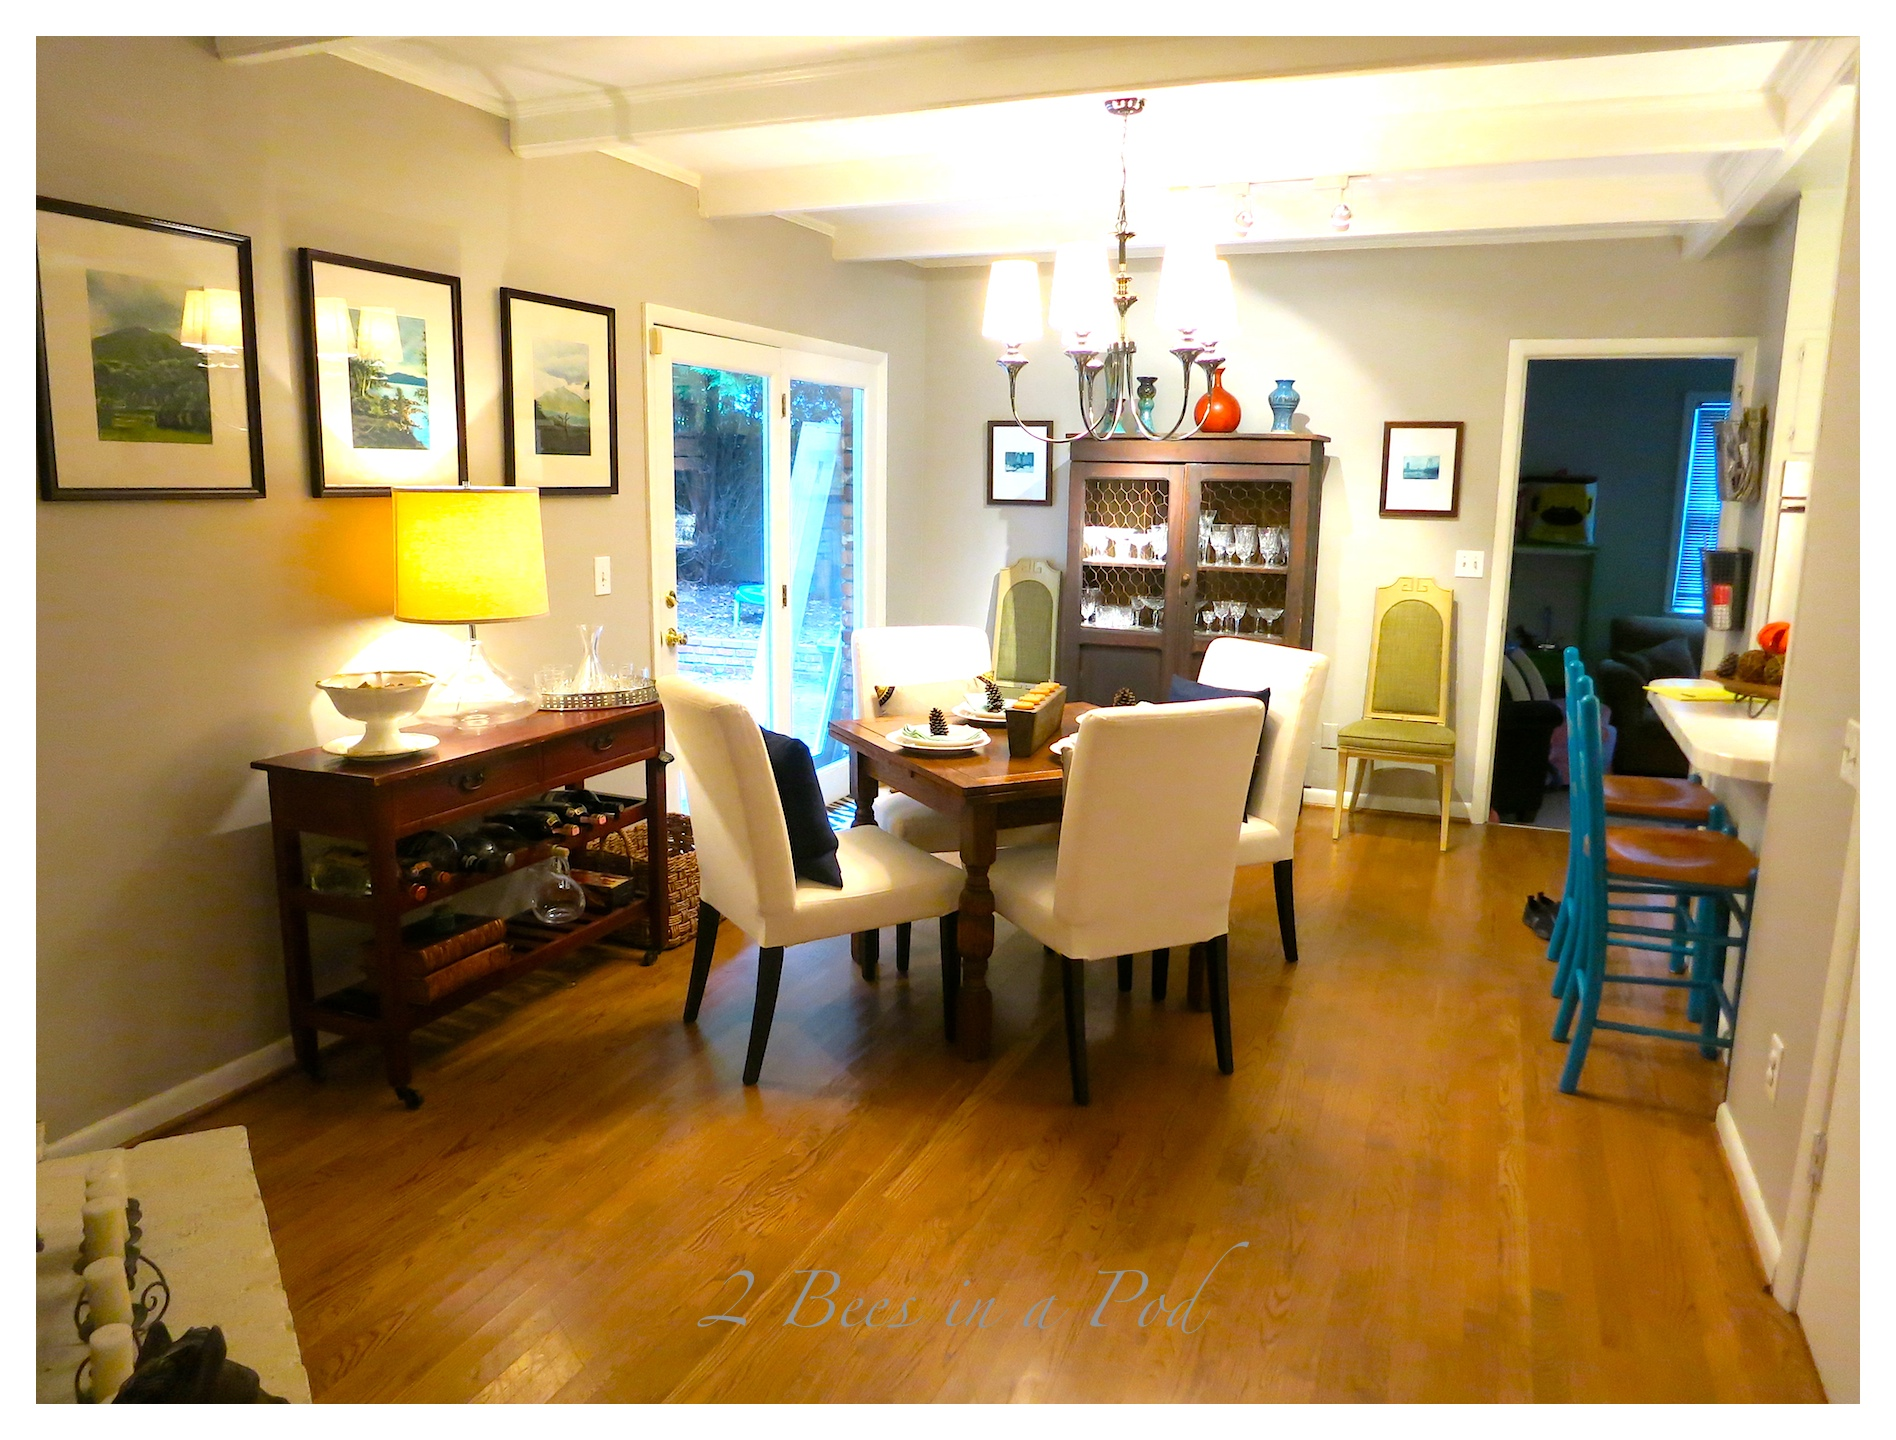 A dining area got a makeover...by just moving around furnishings and accessories a complete transformation and look was achieved.